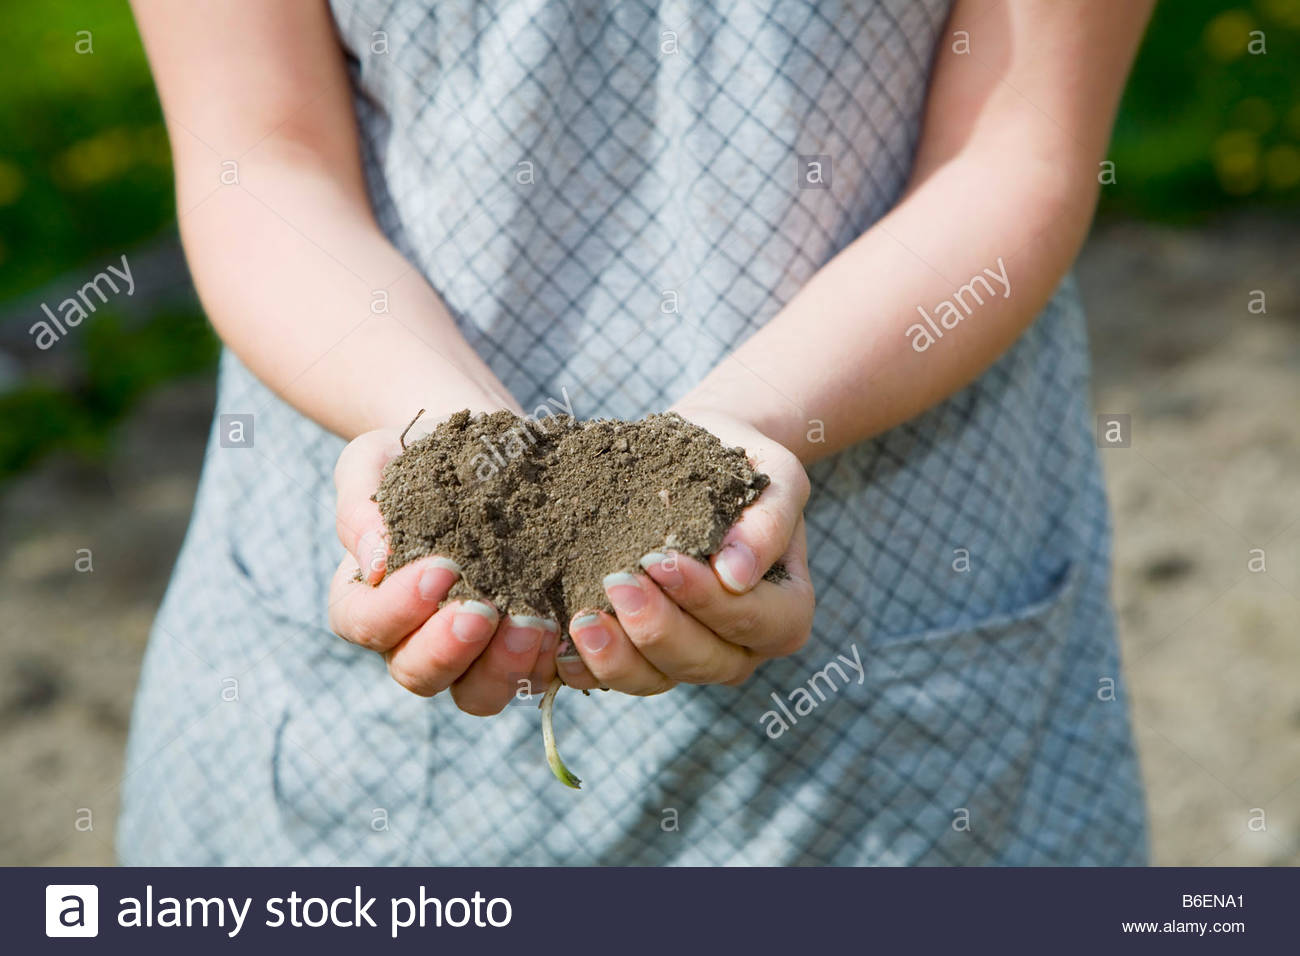 Girl with dirt in her hands - Stock Image